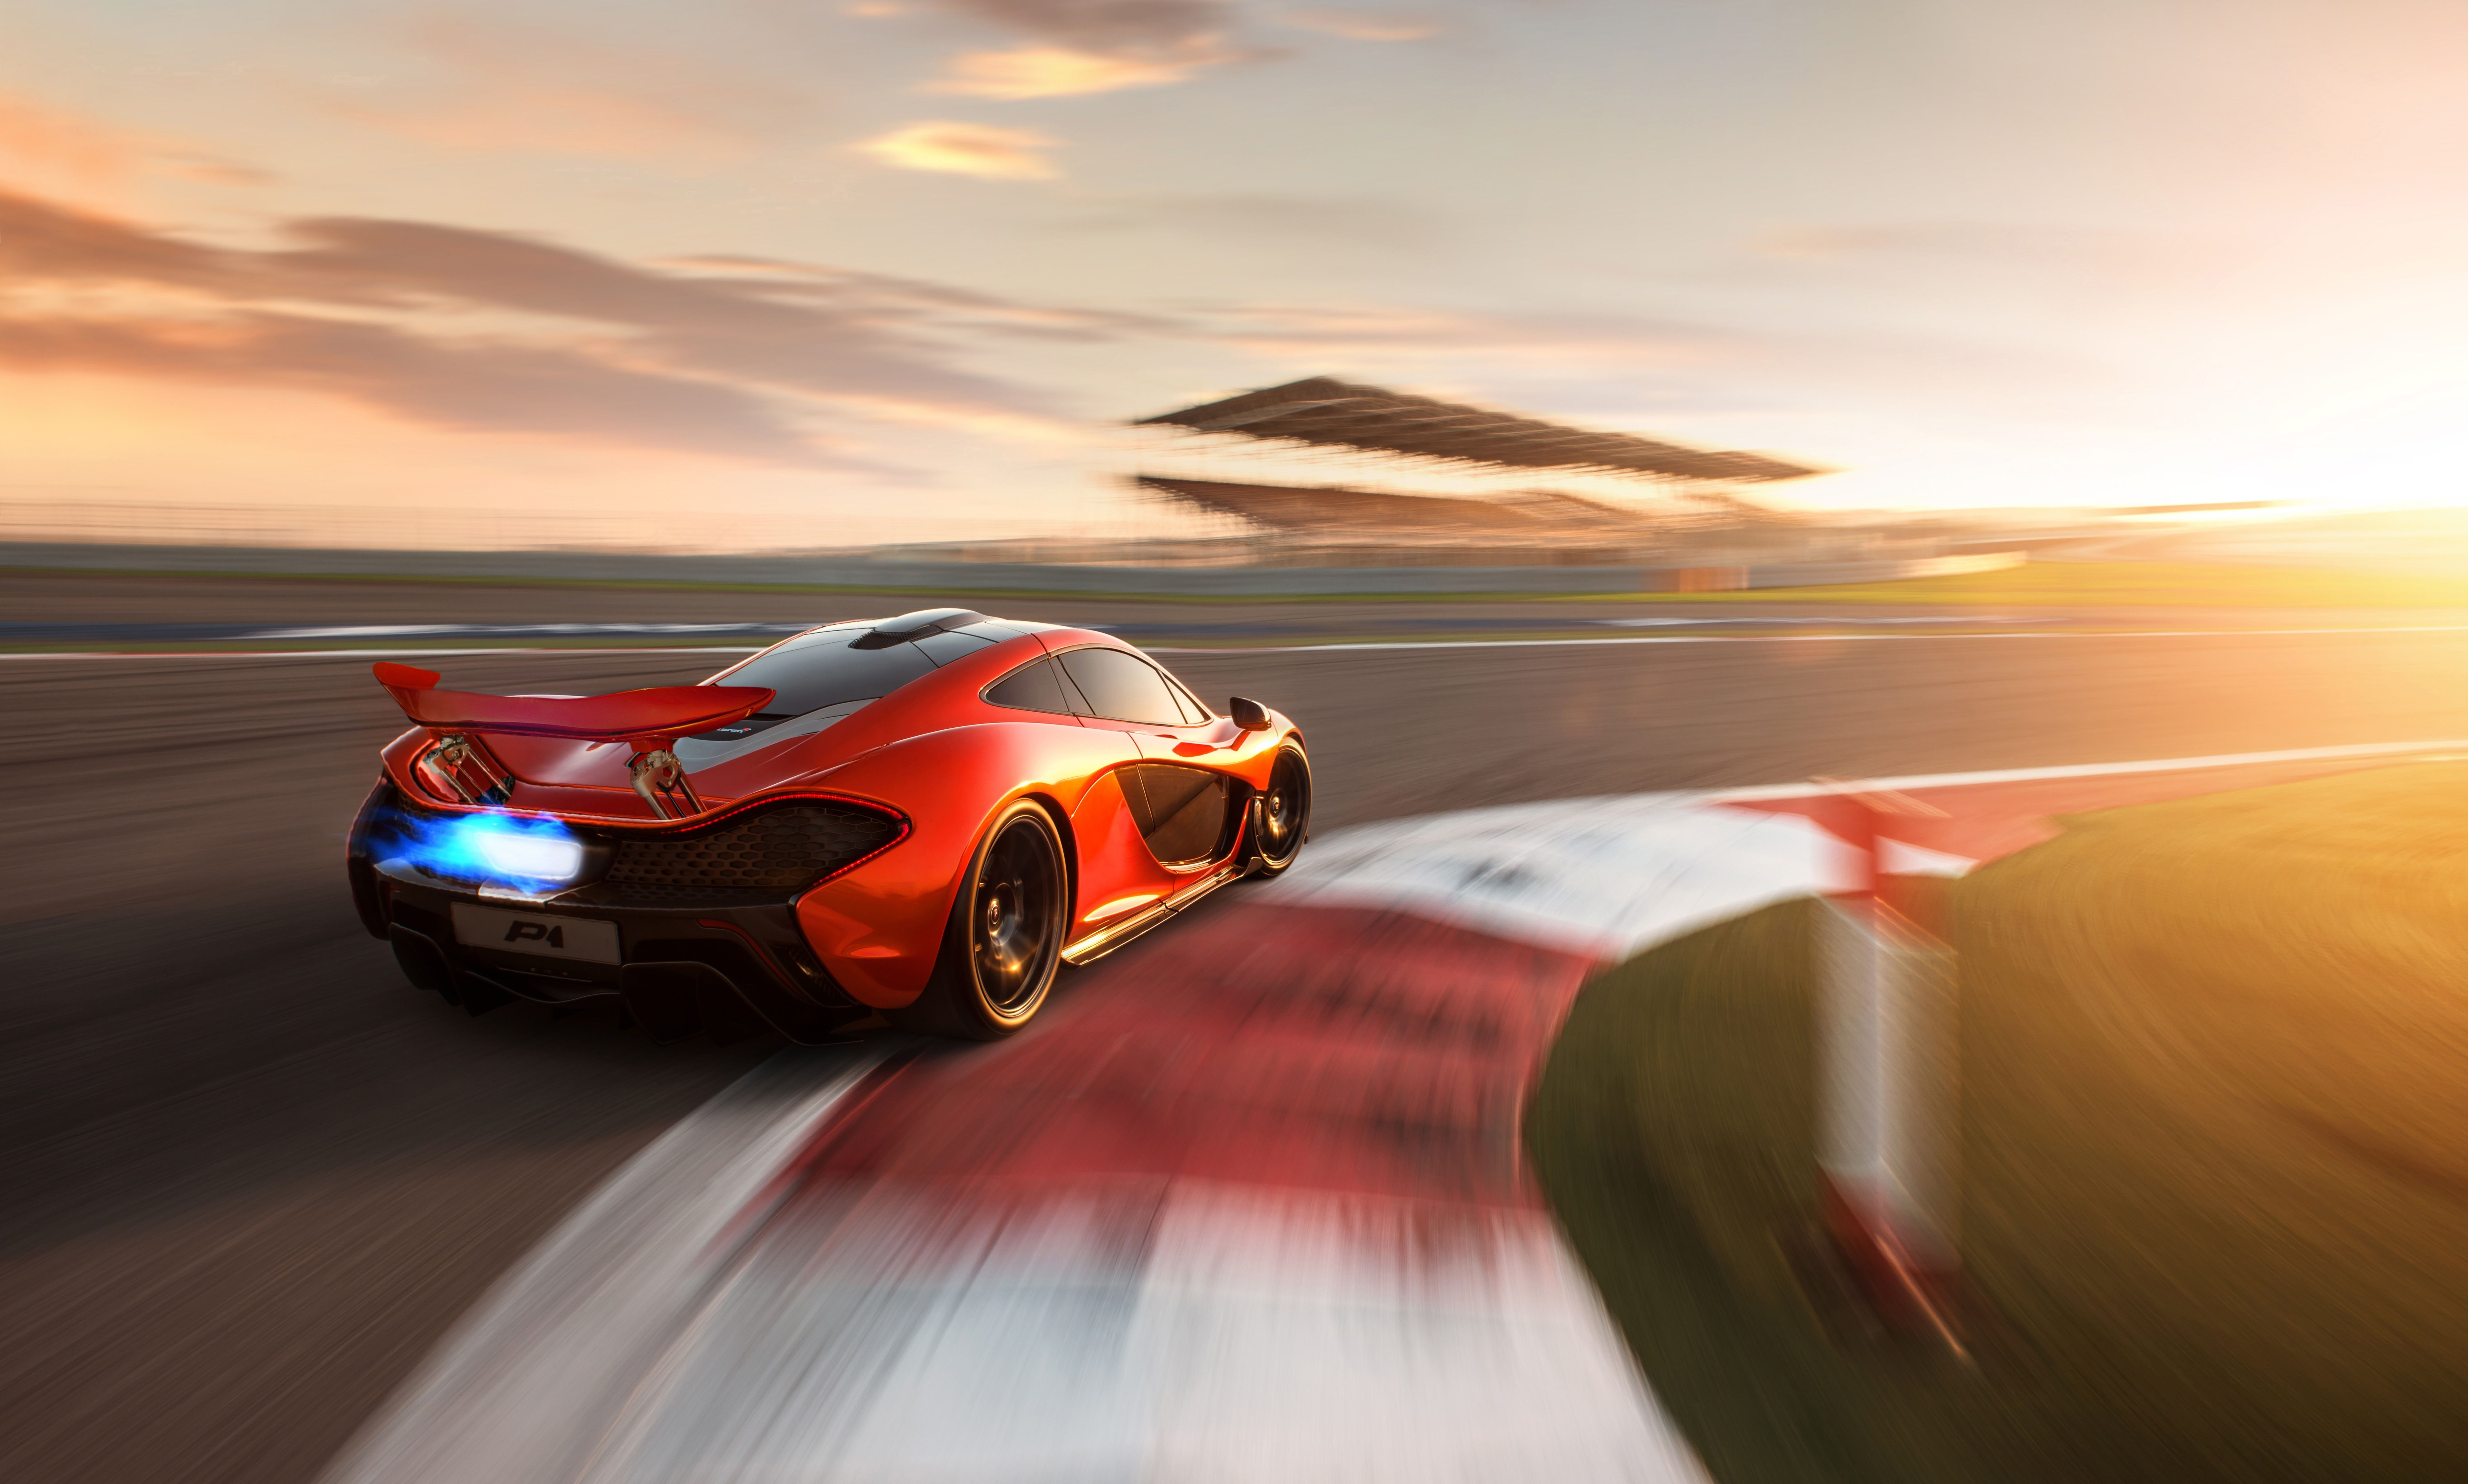 Mclaren P1 On Track 8k Hd Cars 4k Wallpapers Images Backgrounds Photos And Pictures